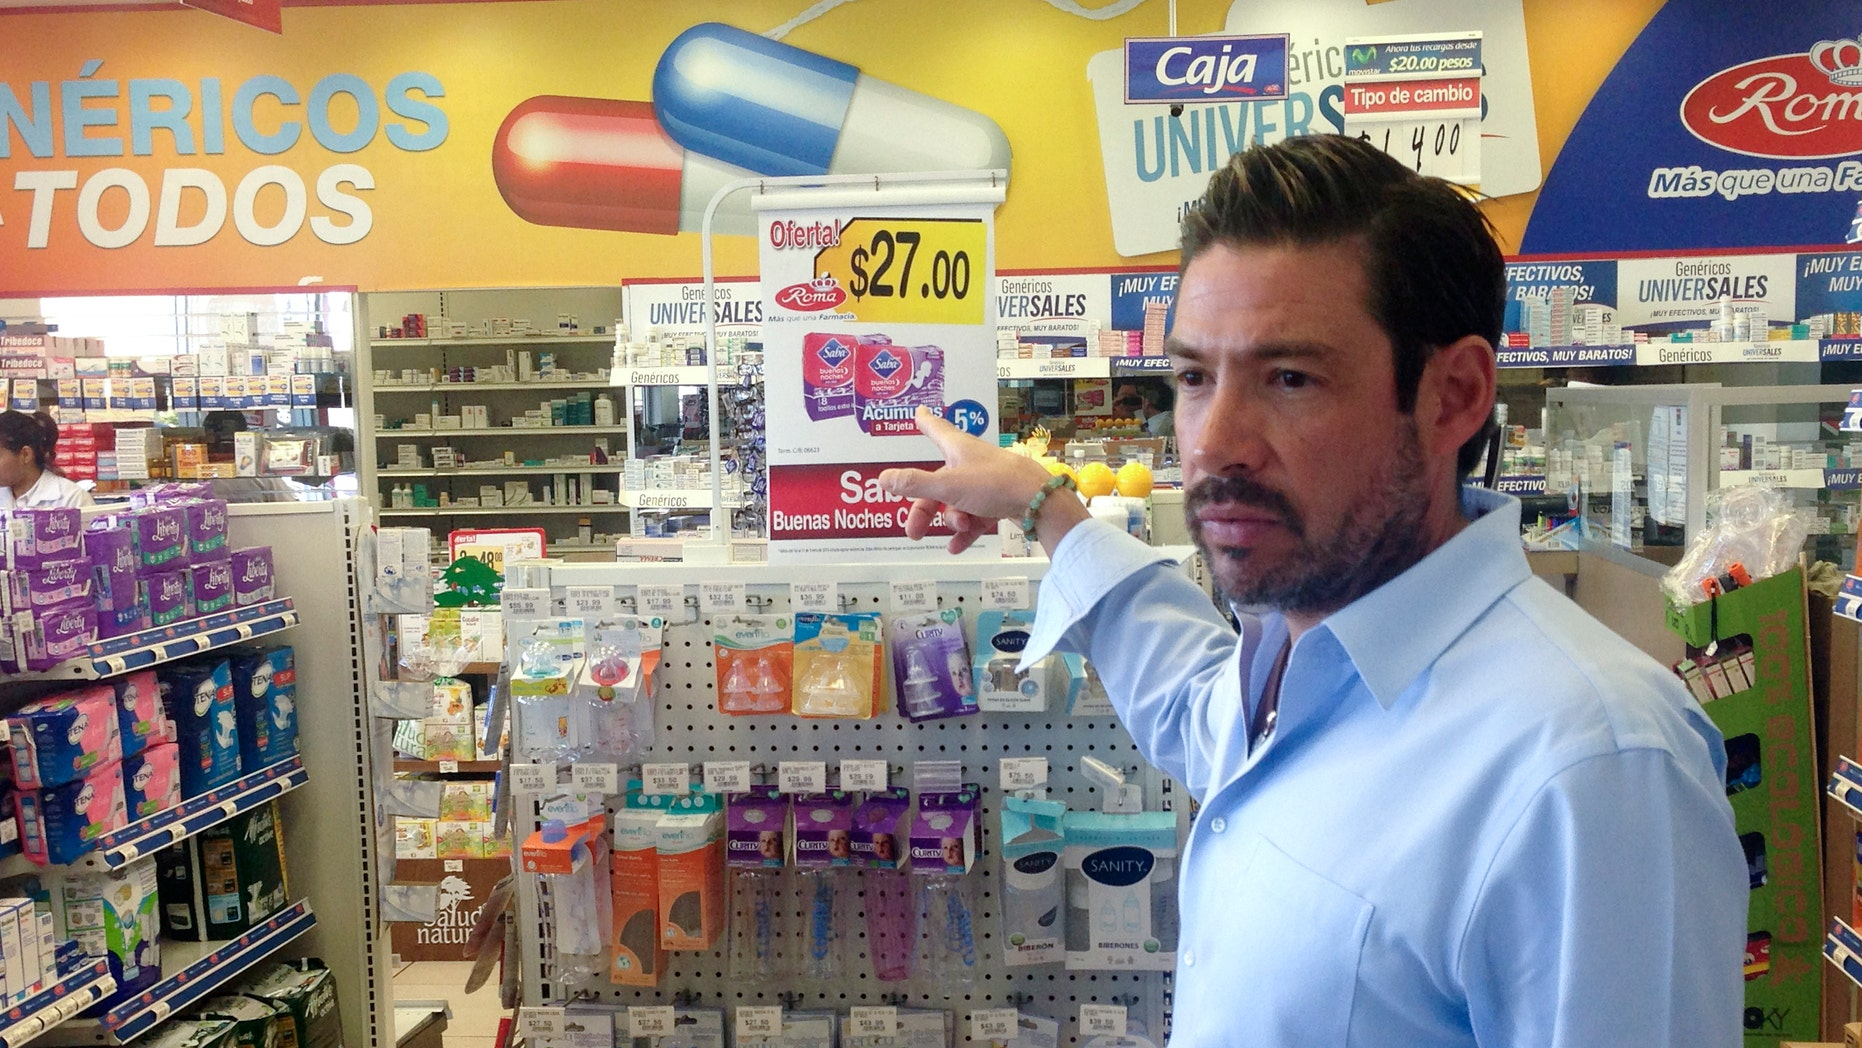 In this Jan. 27, 2015 image, Roberto Castro, chief executive officer of Farmacias Roma, gestures inside one of his locations in Tijuana, Mexico. Castro, who's customers often pay in dollars, faces tough challenges amid a clamor to crack down on money laundering. Many American banks, wary of the potential for massive penalties, have closed Mexican accounts or saddled customers with new restrictions rather than risk the chance. (AP Photo/ Elliot Spagat)